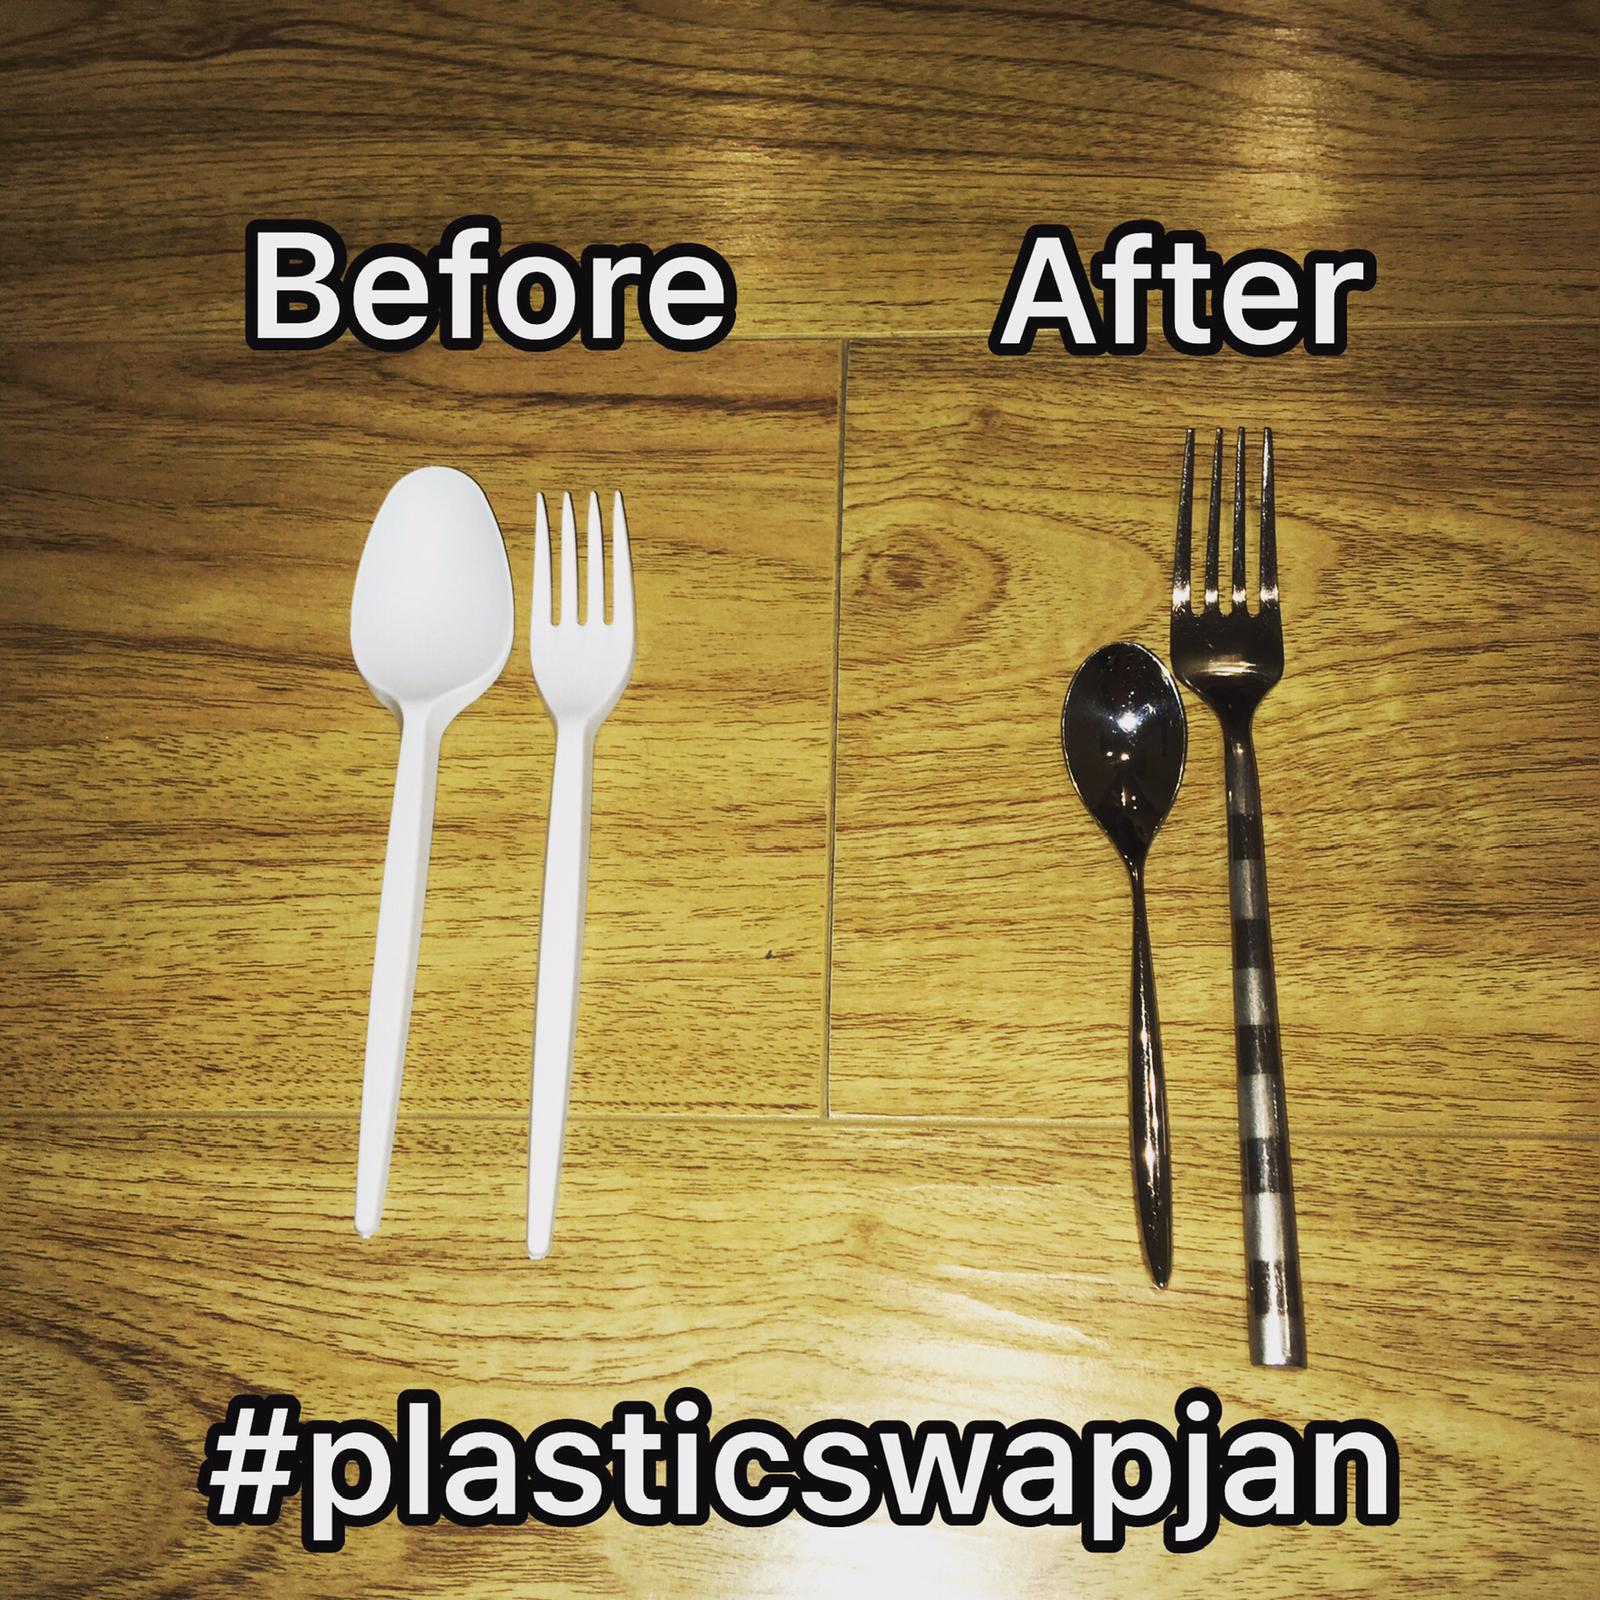 Plastic and metal utensils.